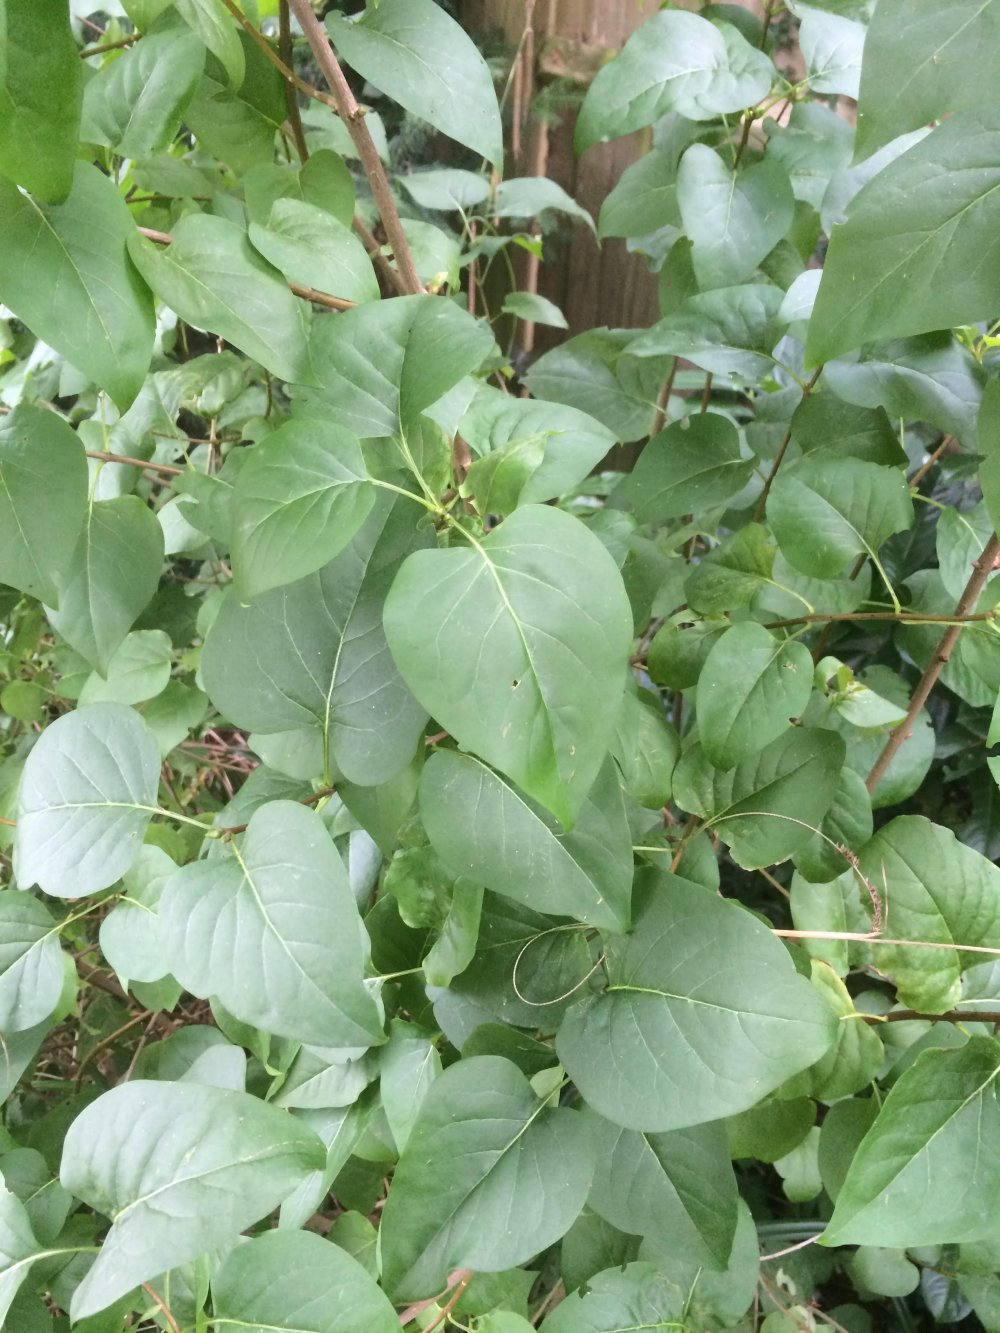 Plants That Look Similar To Japanese Knotweed Plants Mistaken For